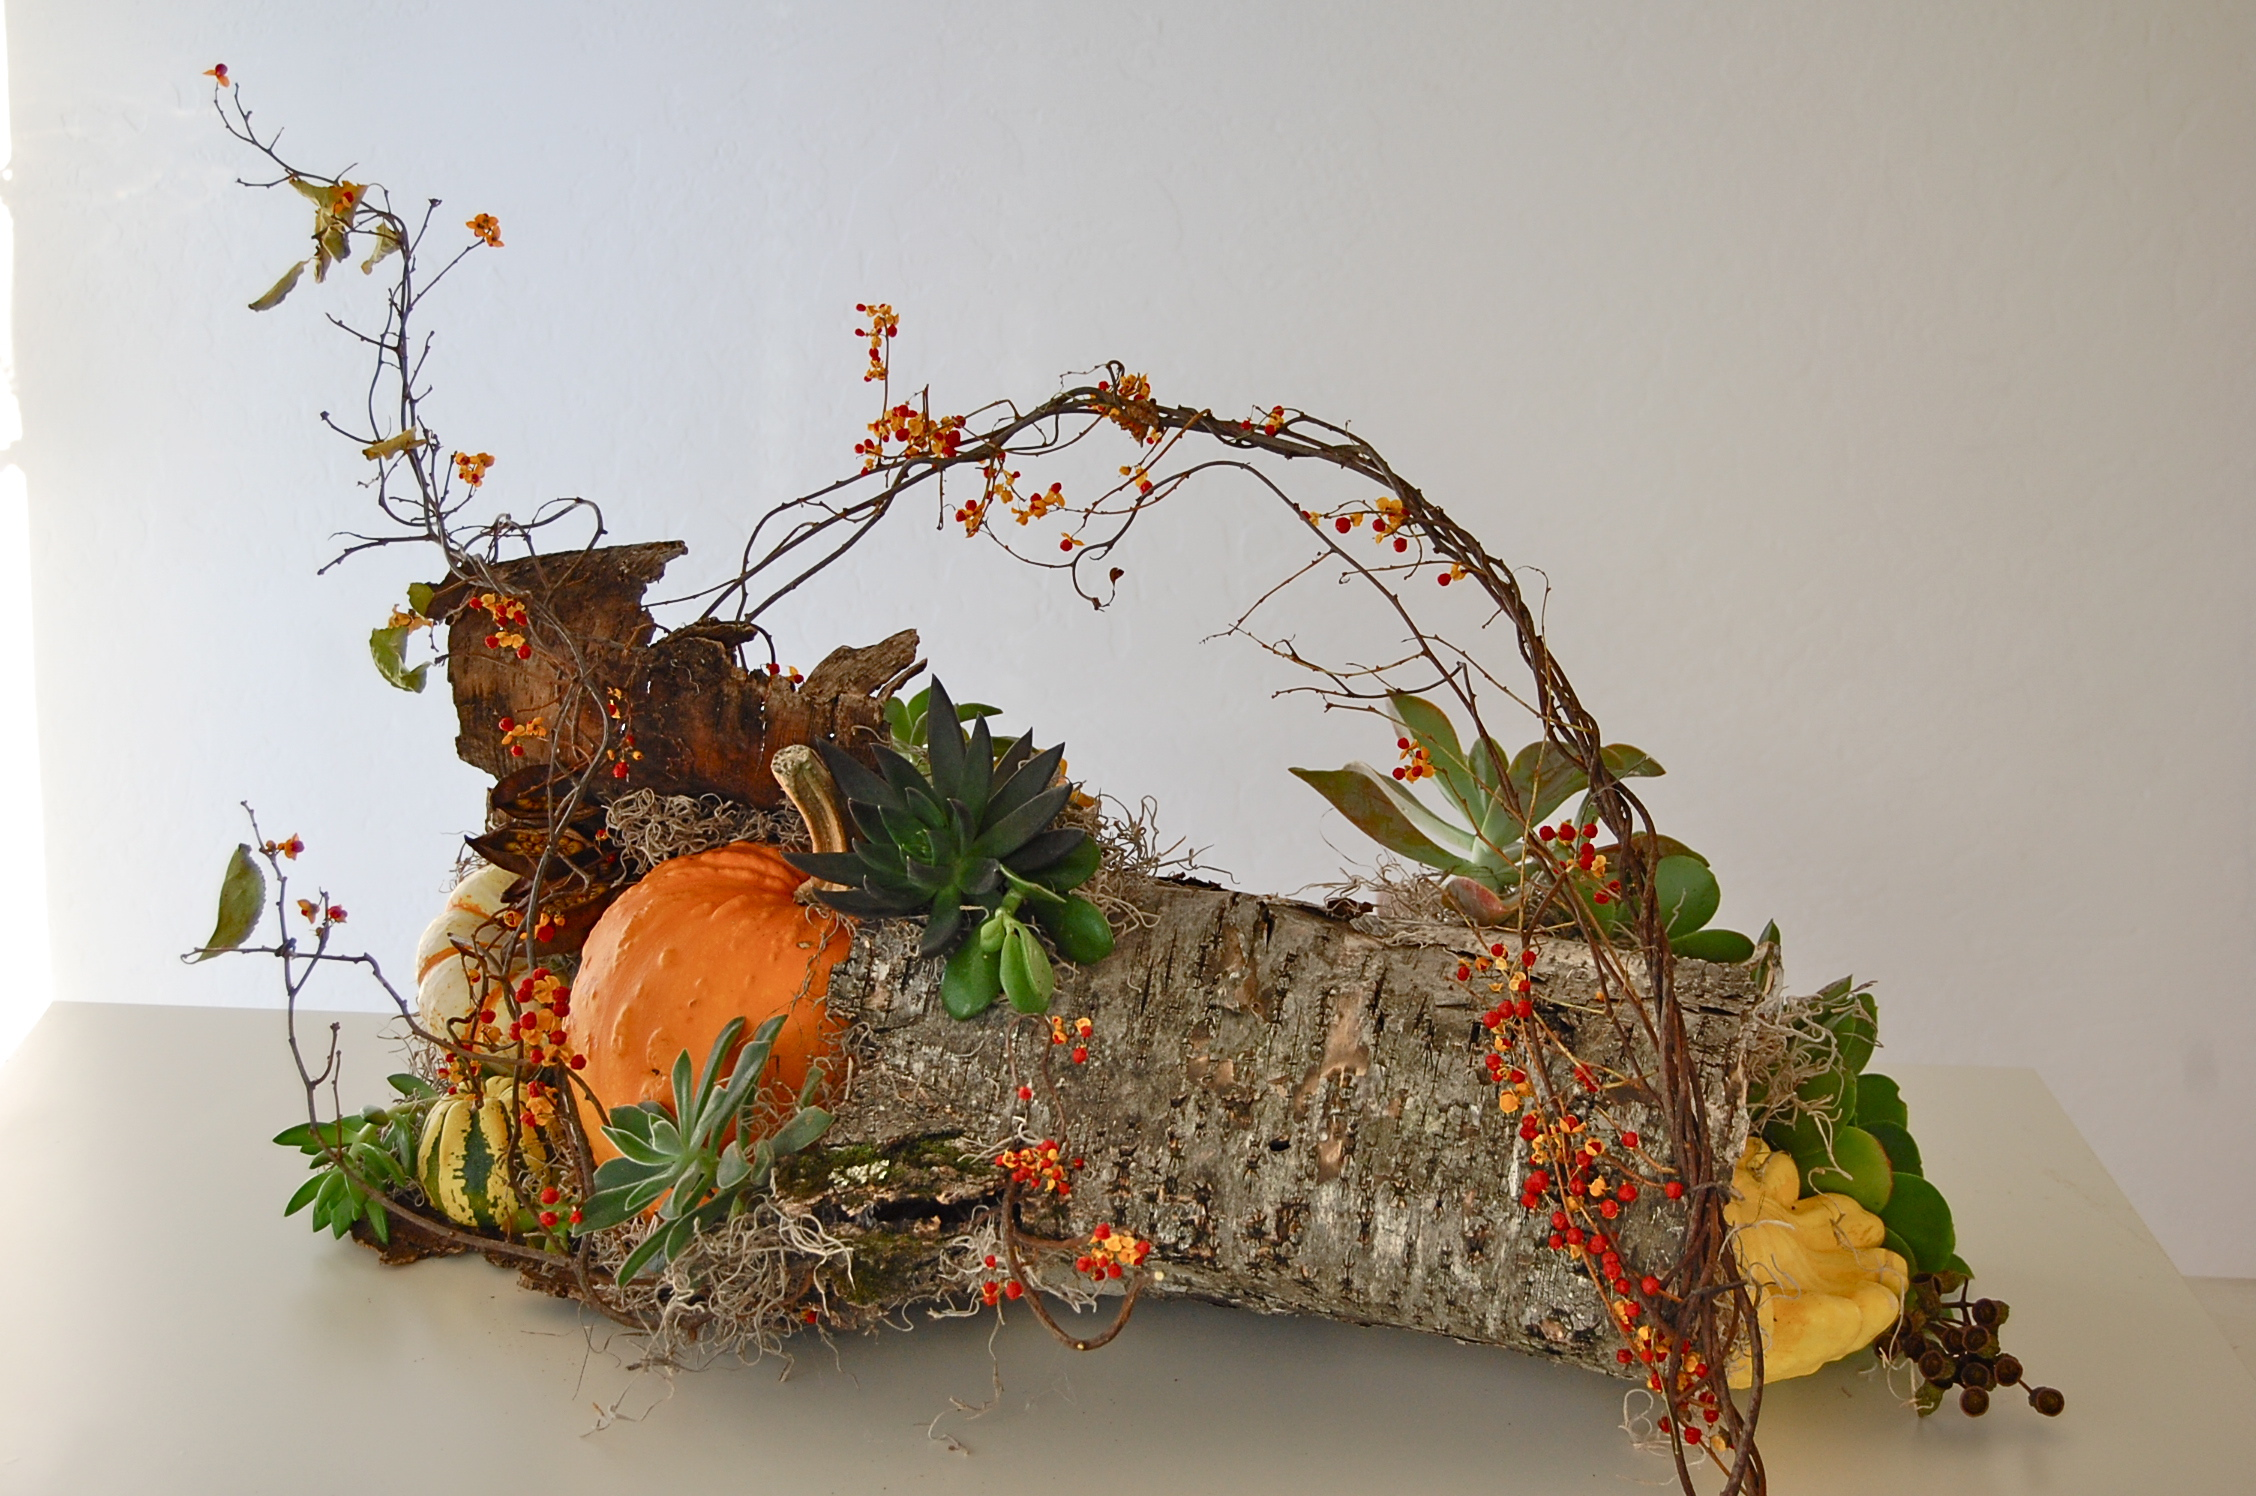 Thanksgiving Centerpiece of Birch Log with Pumpkins and Goards